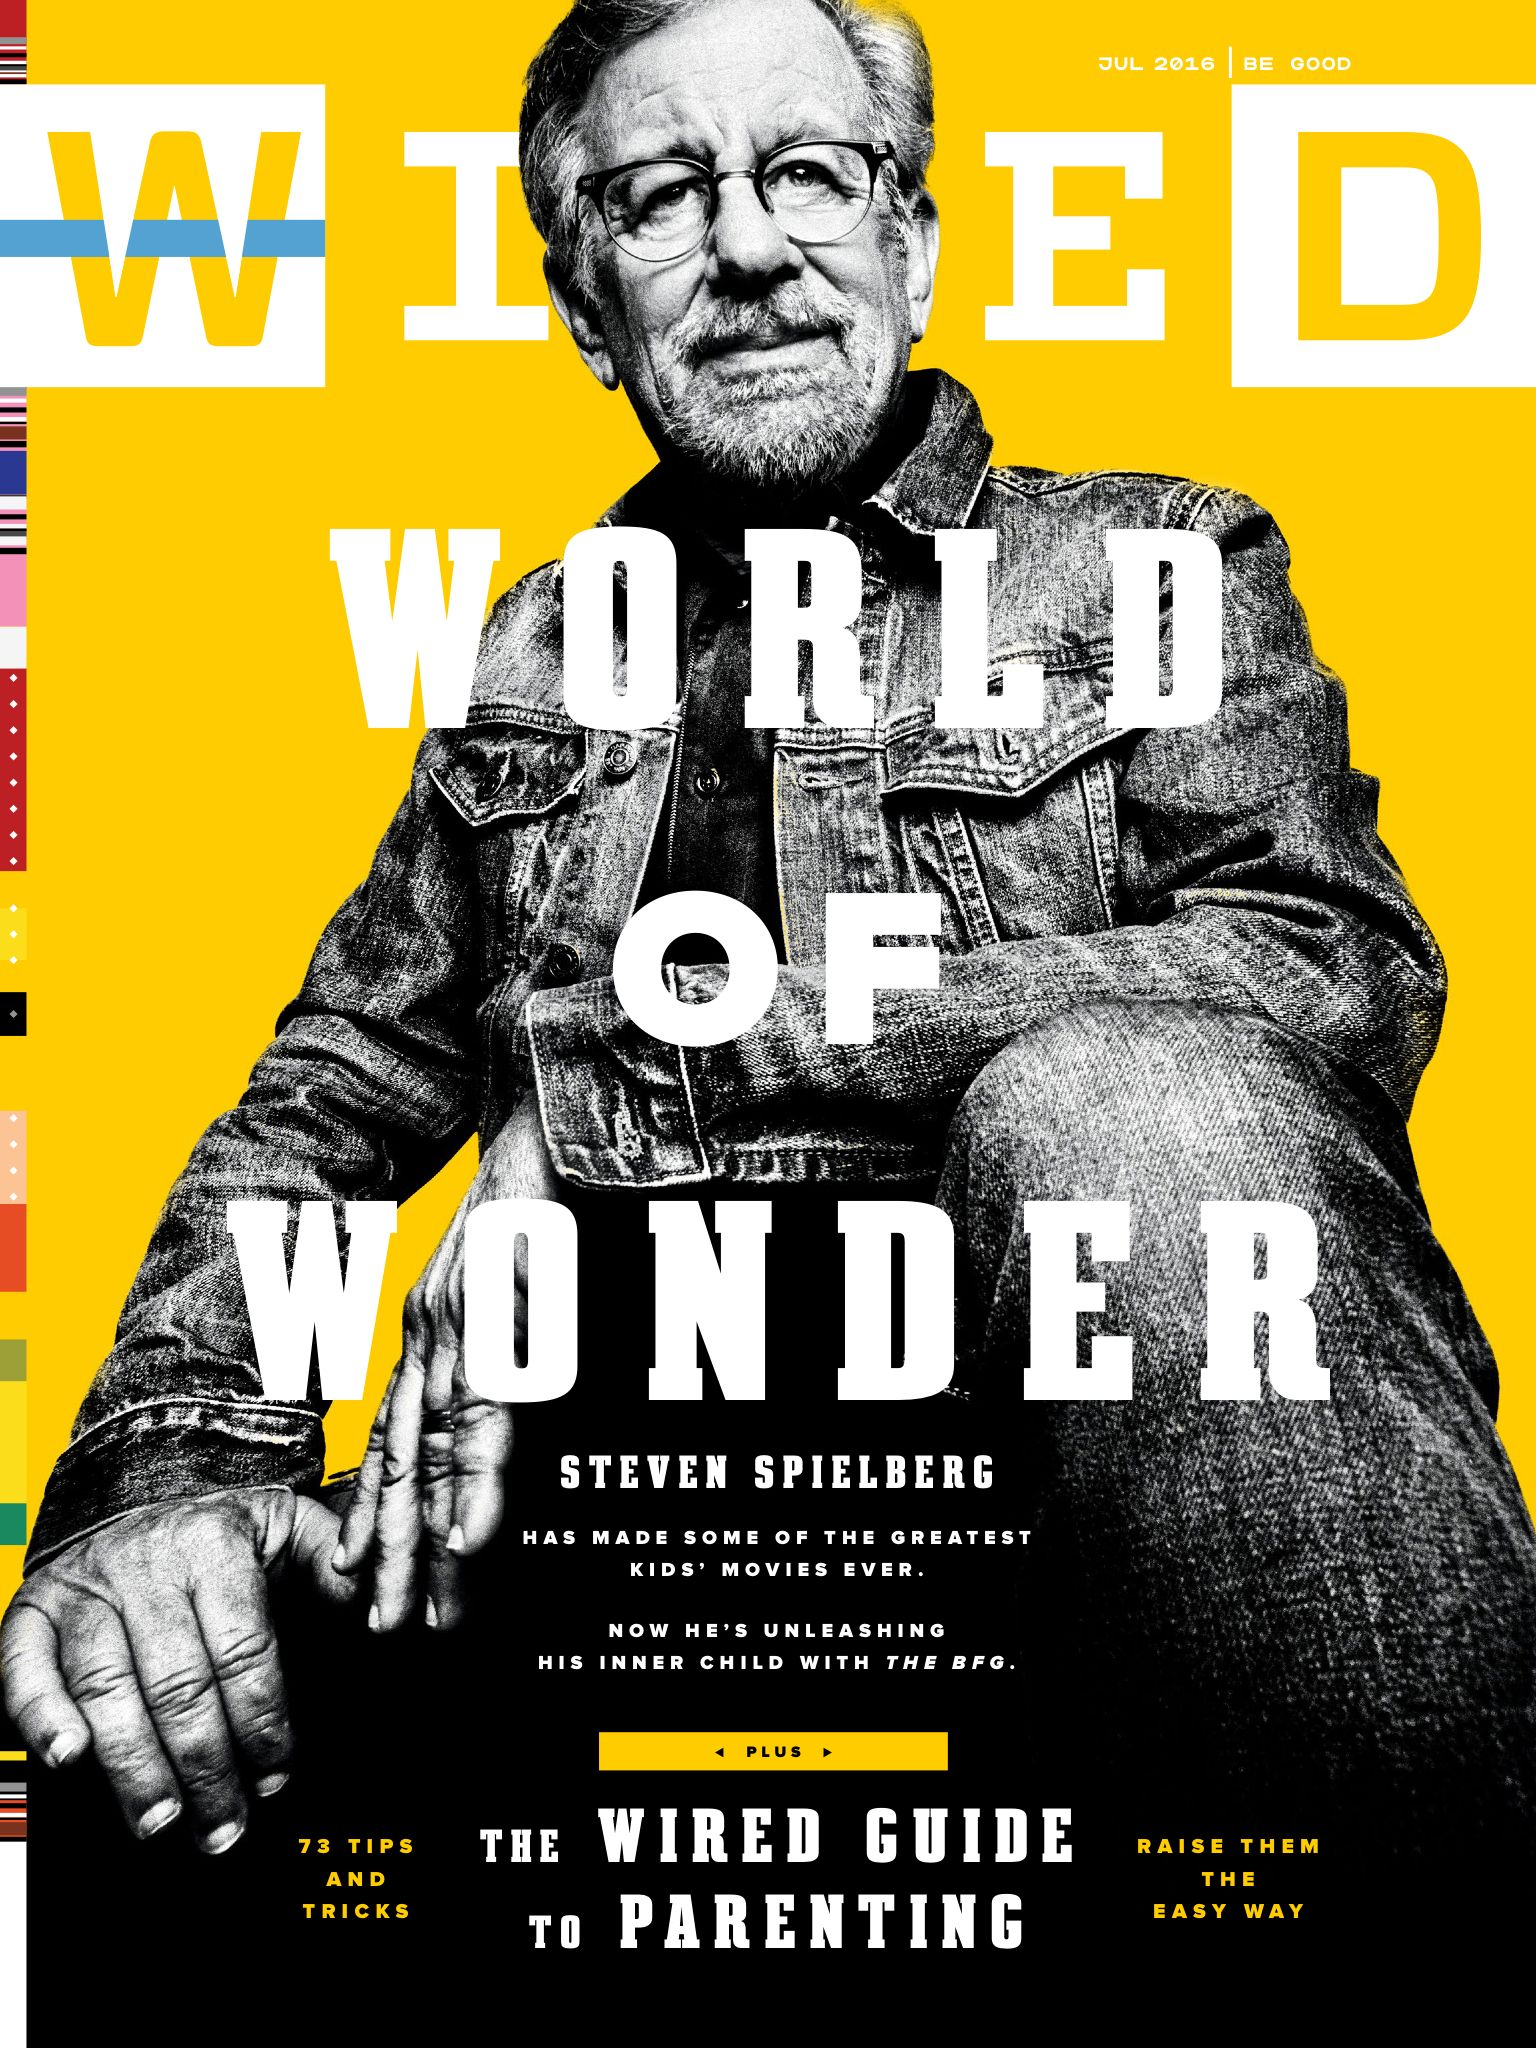 Wired cover from July 2016 with film director Steven